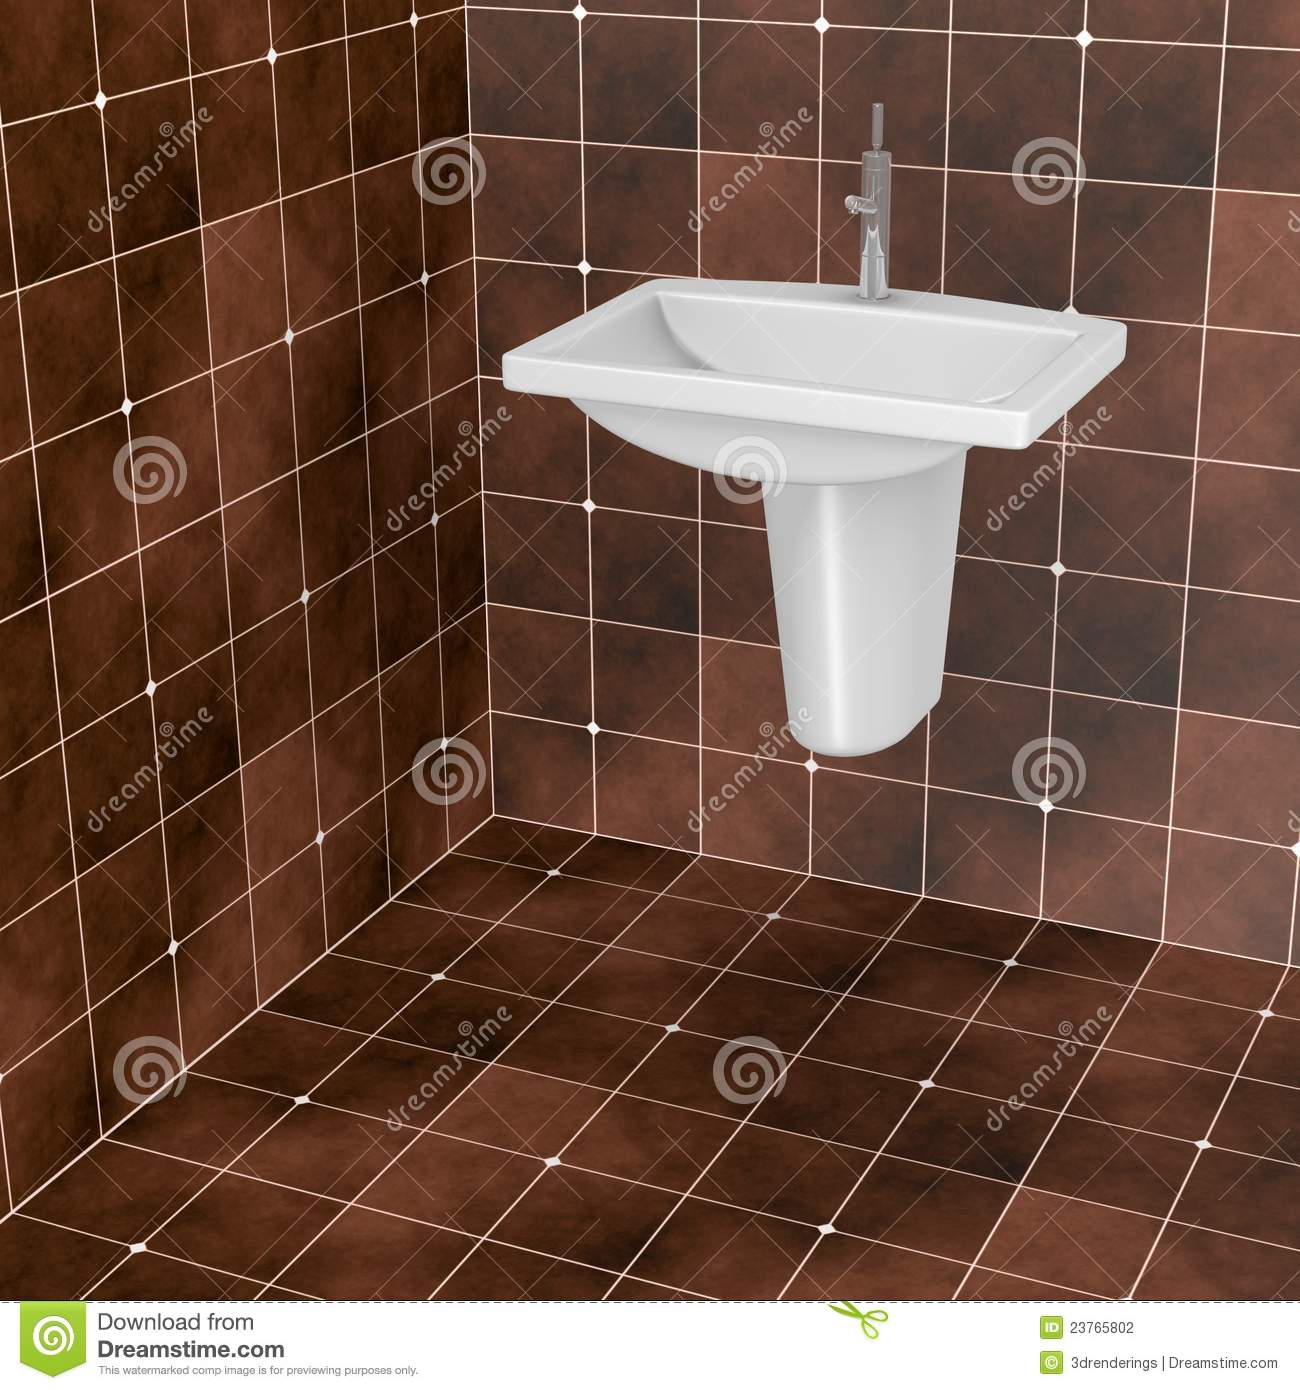 Fliesen Bad Braun: Dark Brown Bathroom Tiles Stock Illustration. Image Of